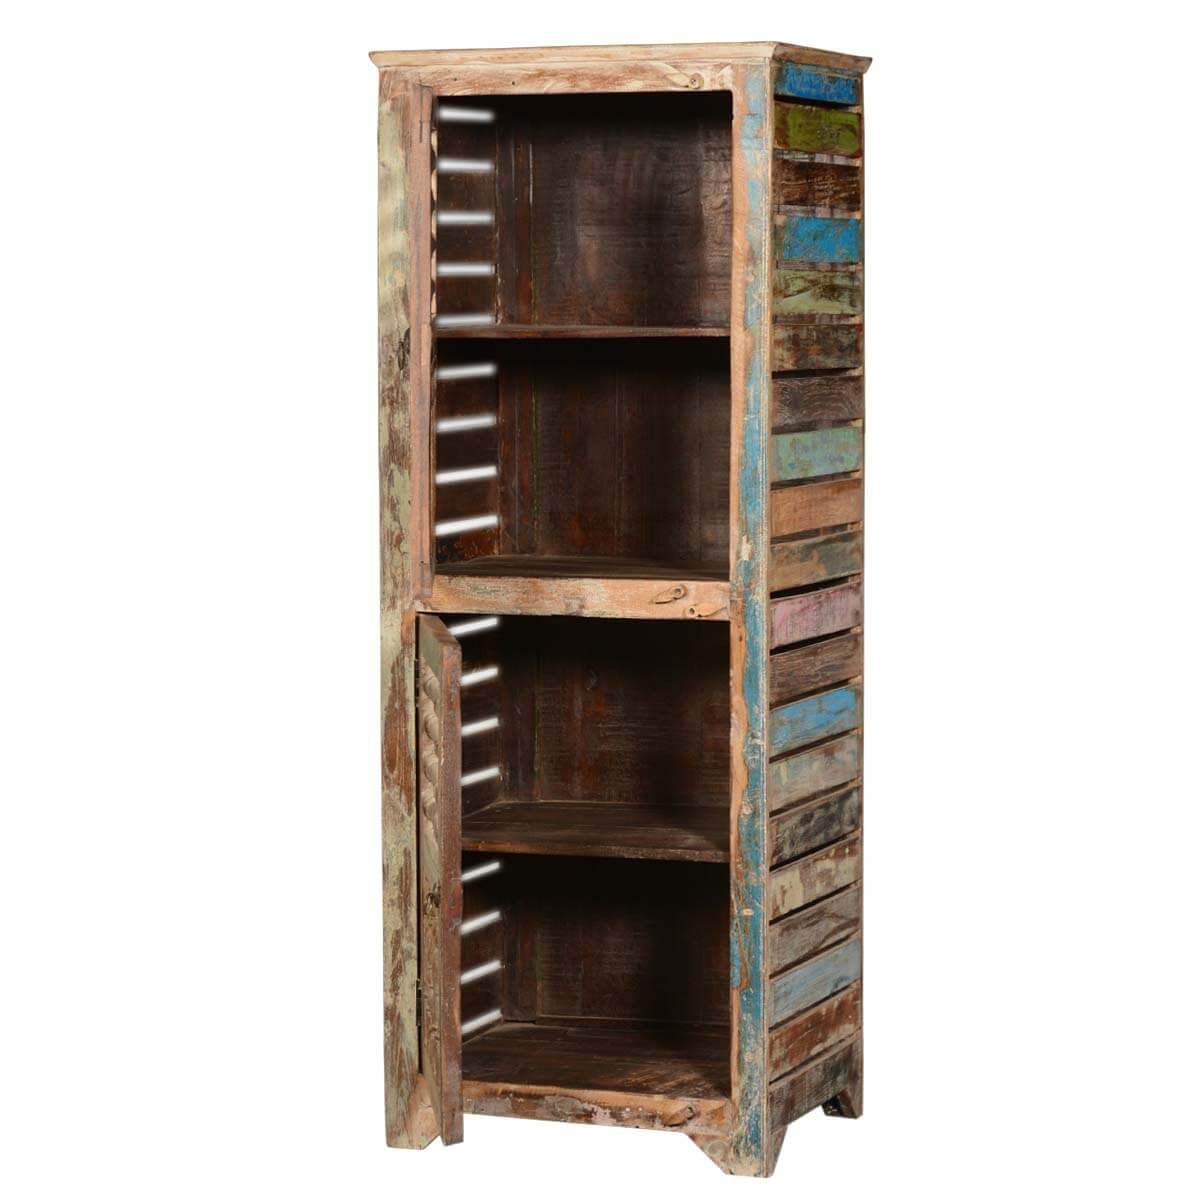 Rustic Reclaimed Wood Shutter Door 60 Narrow Kitchen